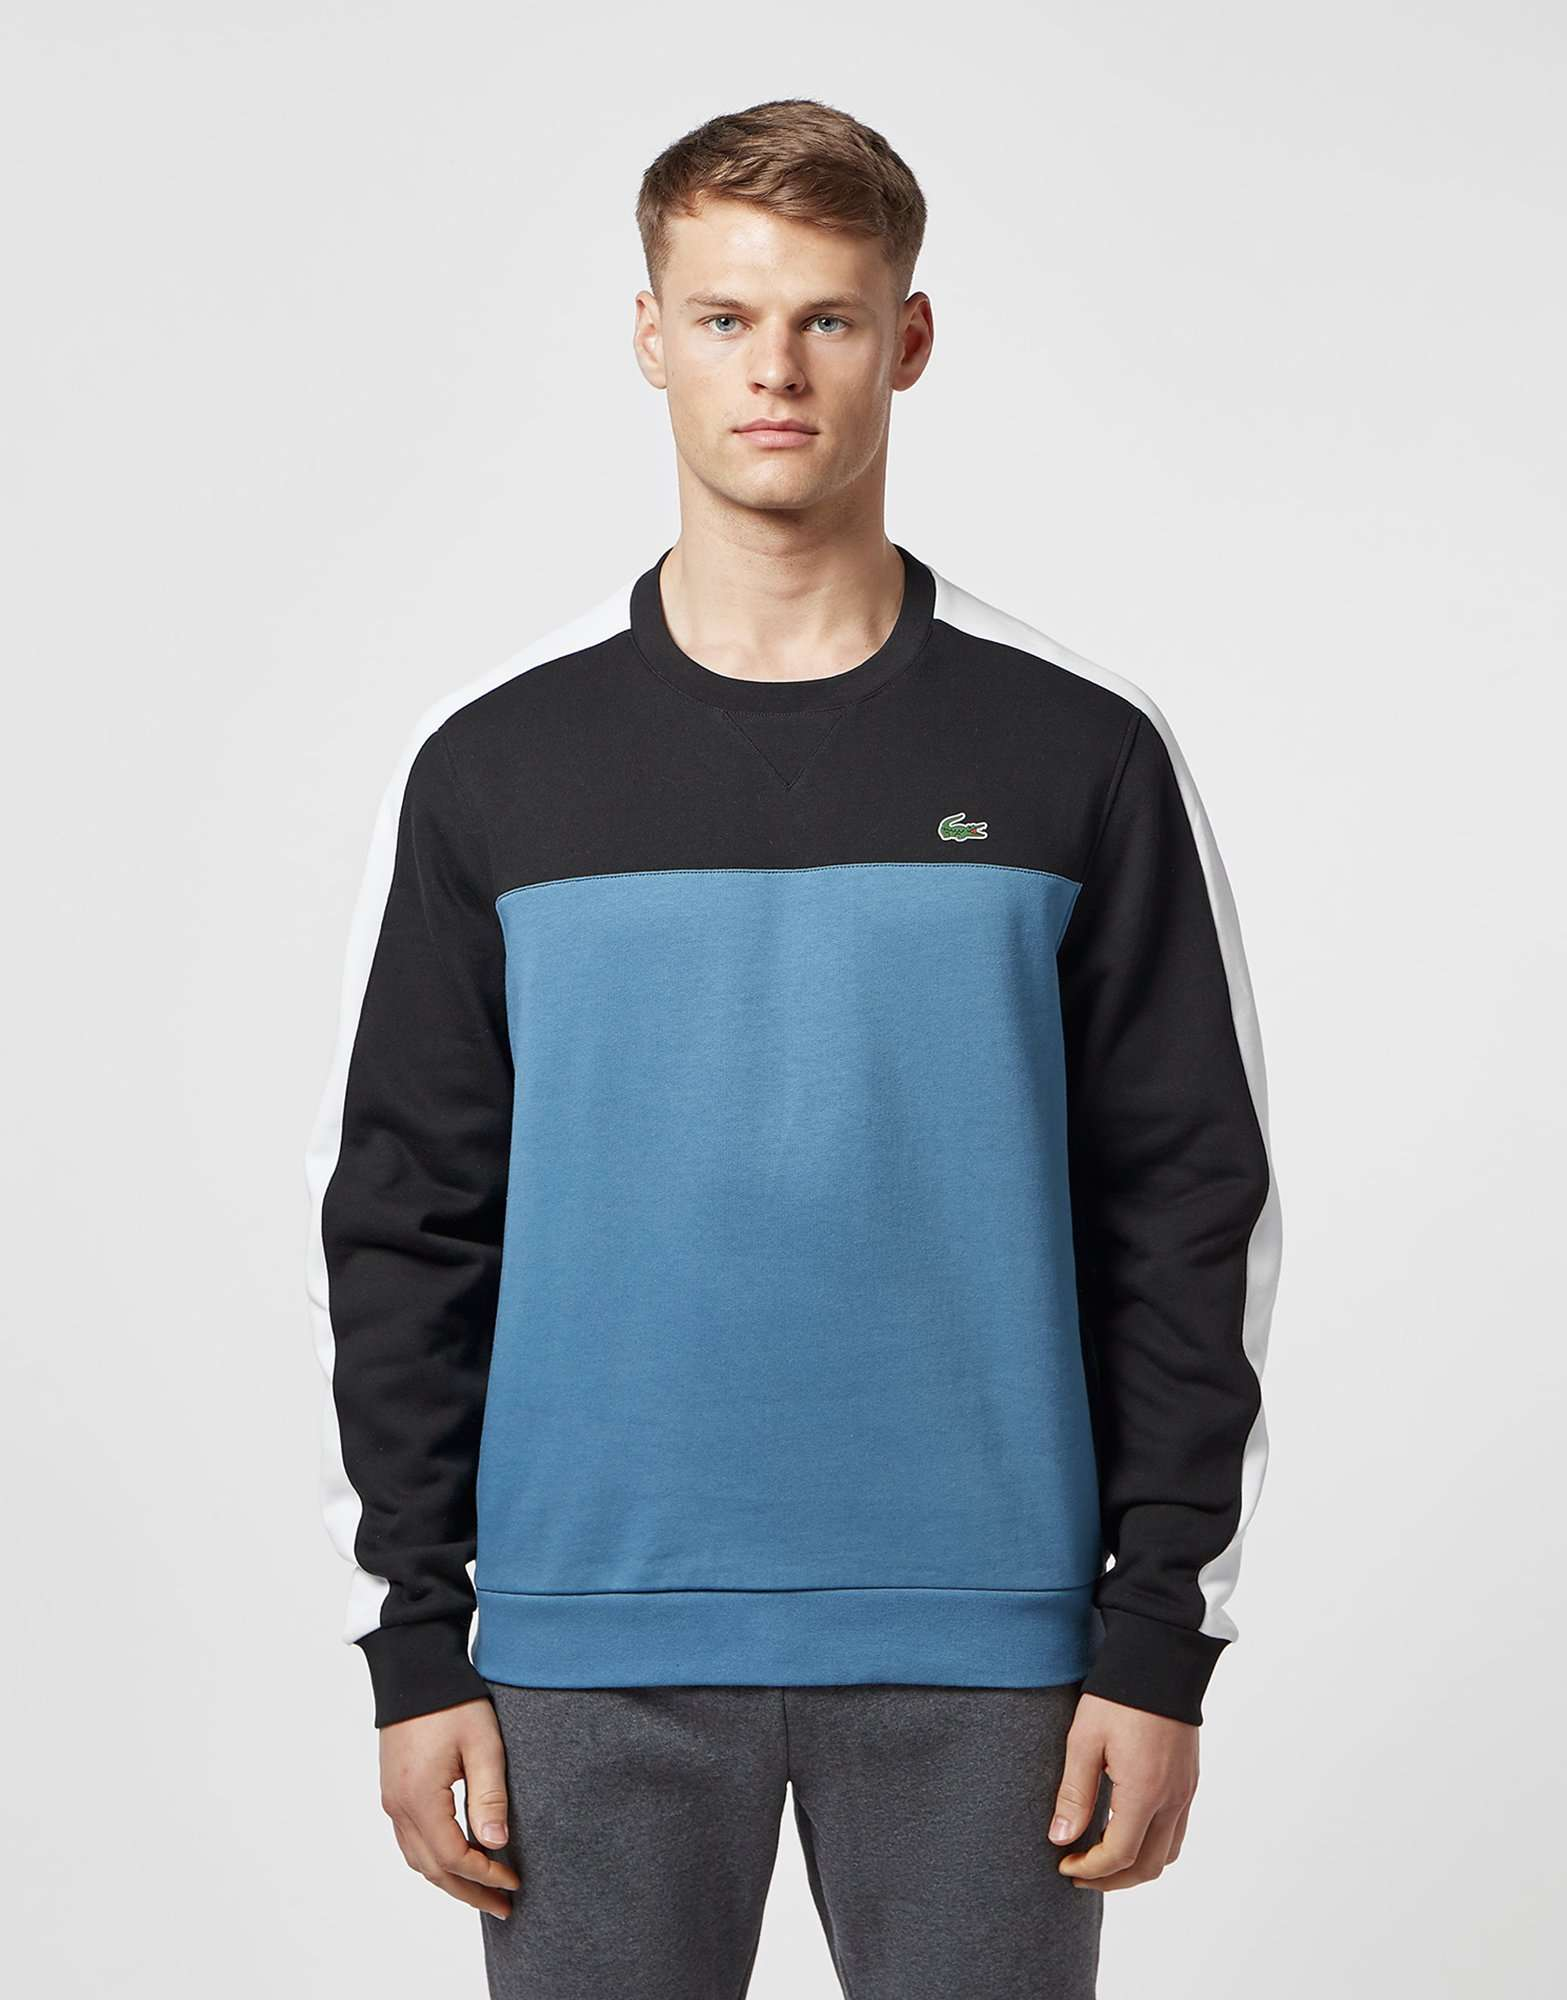 Lacoste Colour Block Crew Sweatshirt